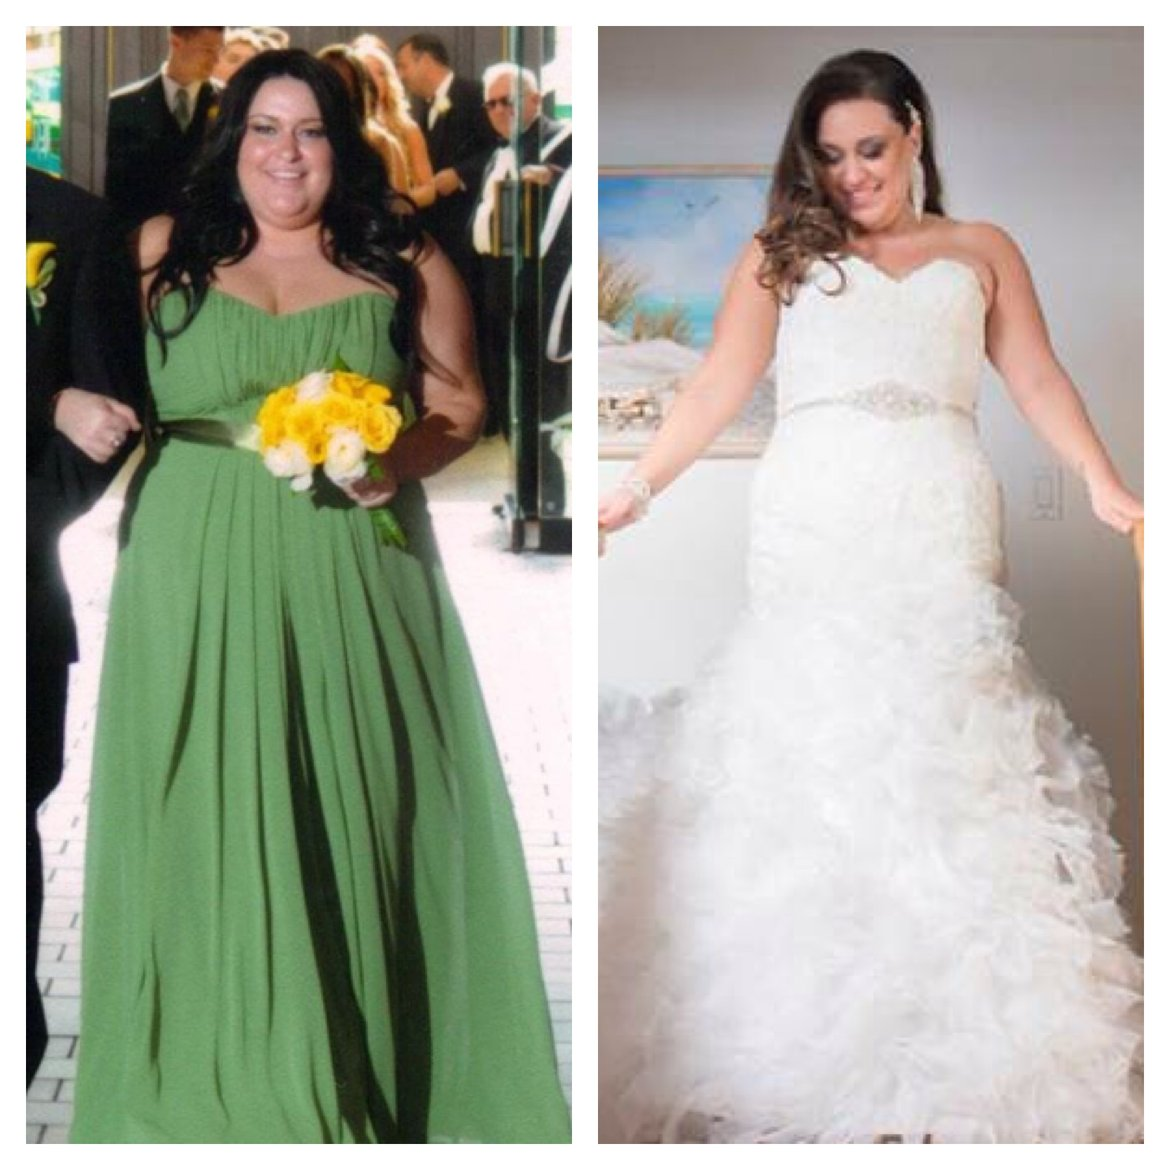 Wedding Weight Lose.Wedding Weight Loss Success Story How I Lost 85 Pounds Bridalguide